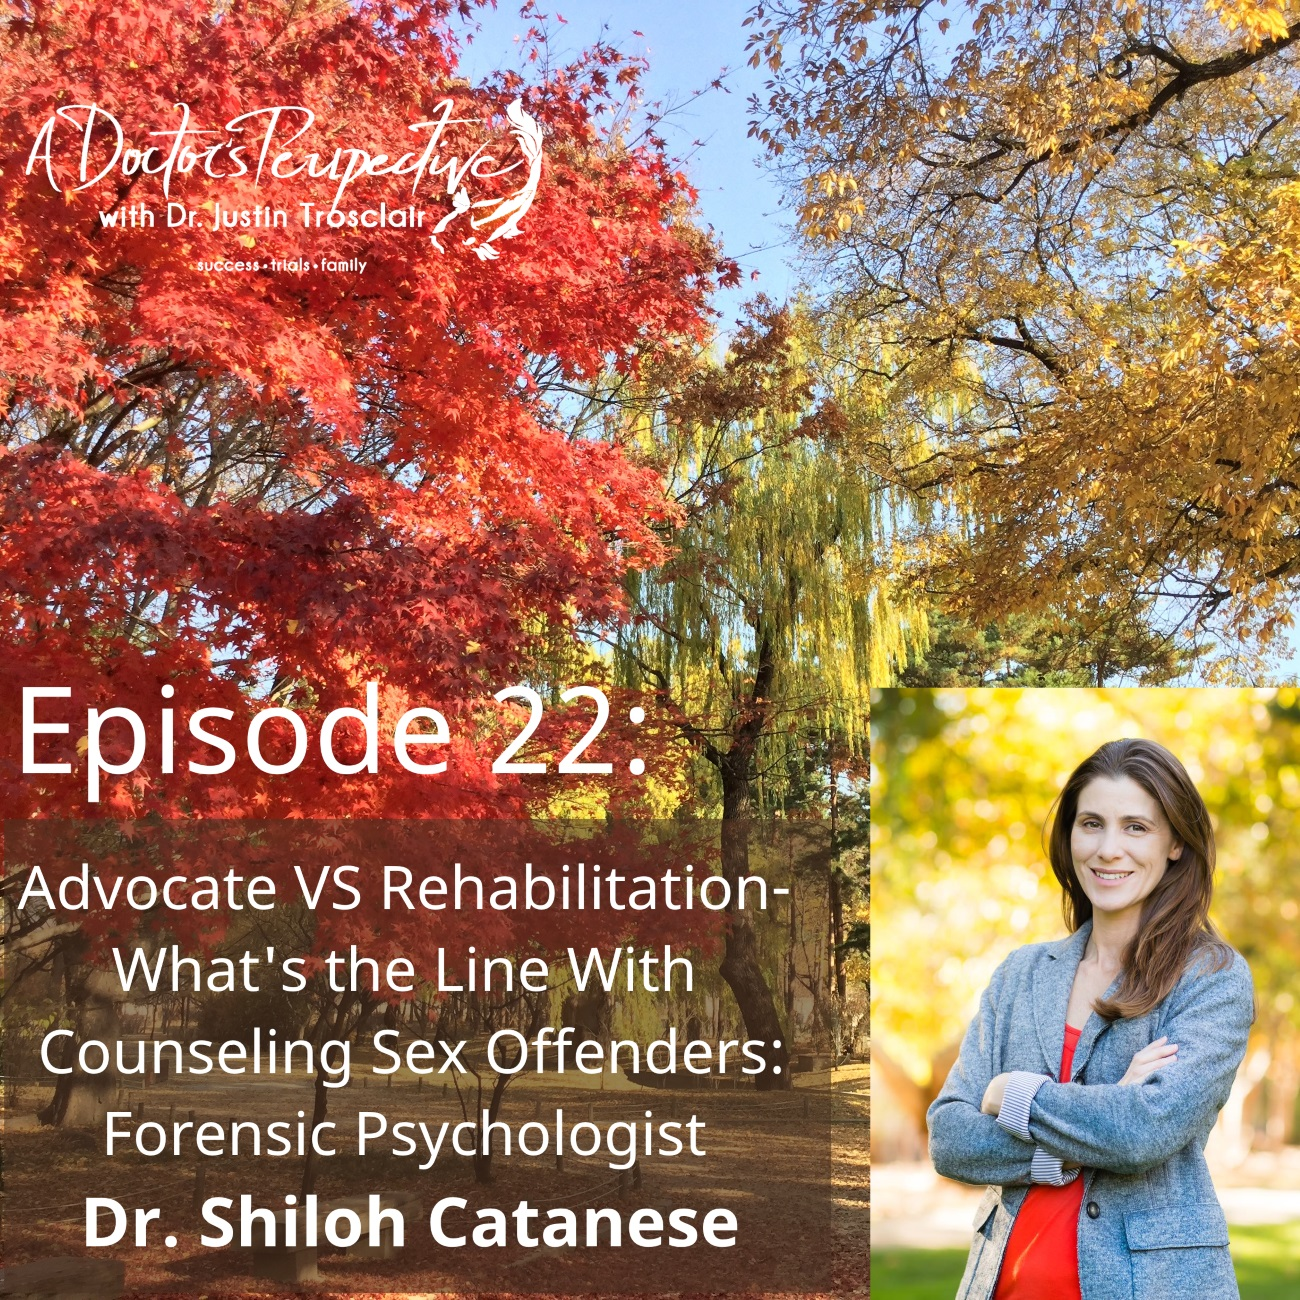 seoul south korea autumn leaves 1 forensic psychologist dr shiloh catanese a doctors perspective podcast 22